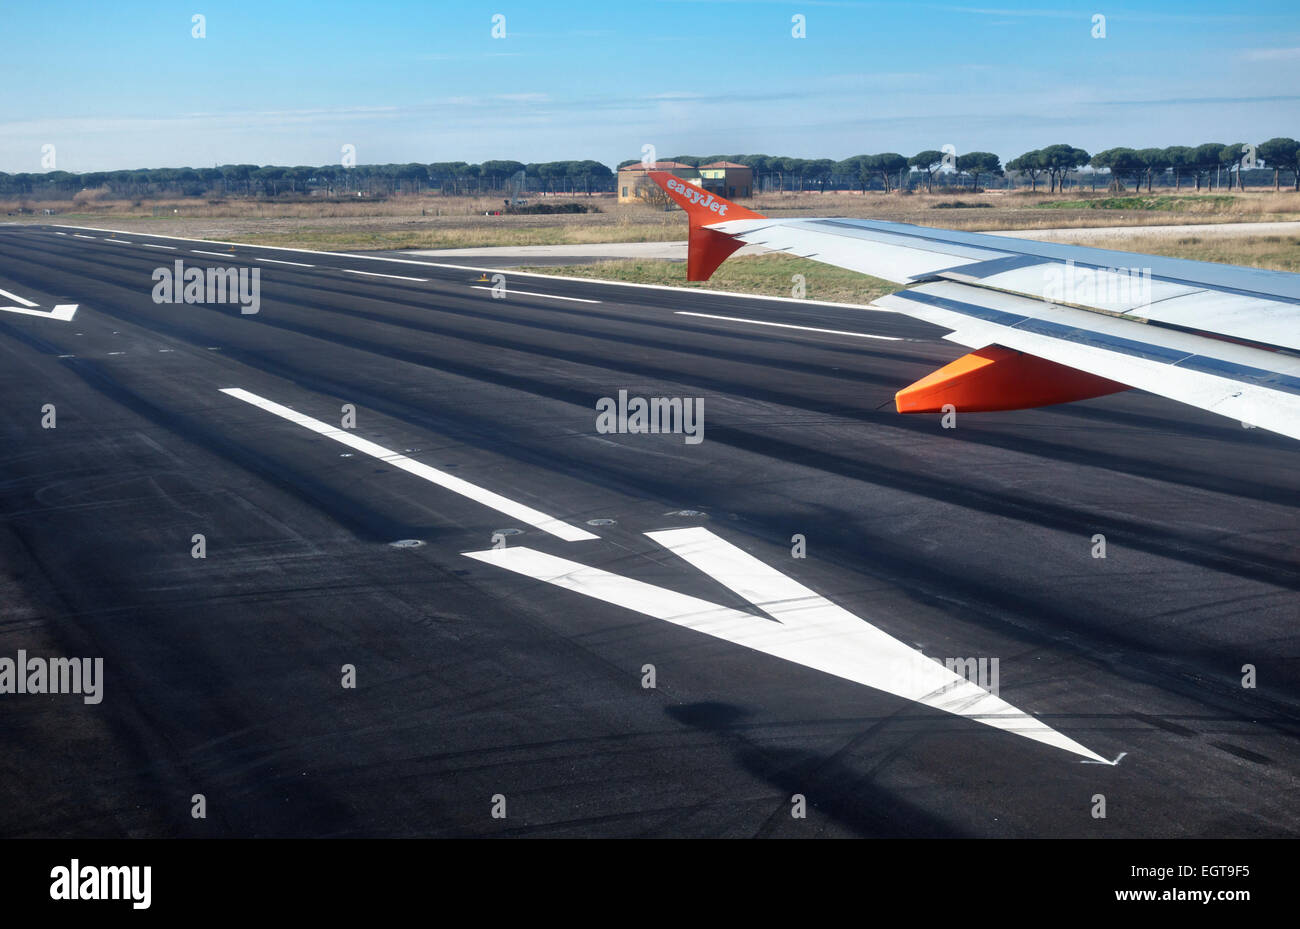 An Easyjet plane taxiing onto the runway before takeoff - Stock Image